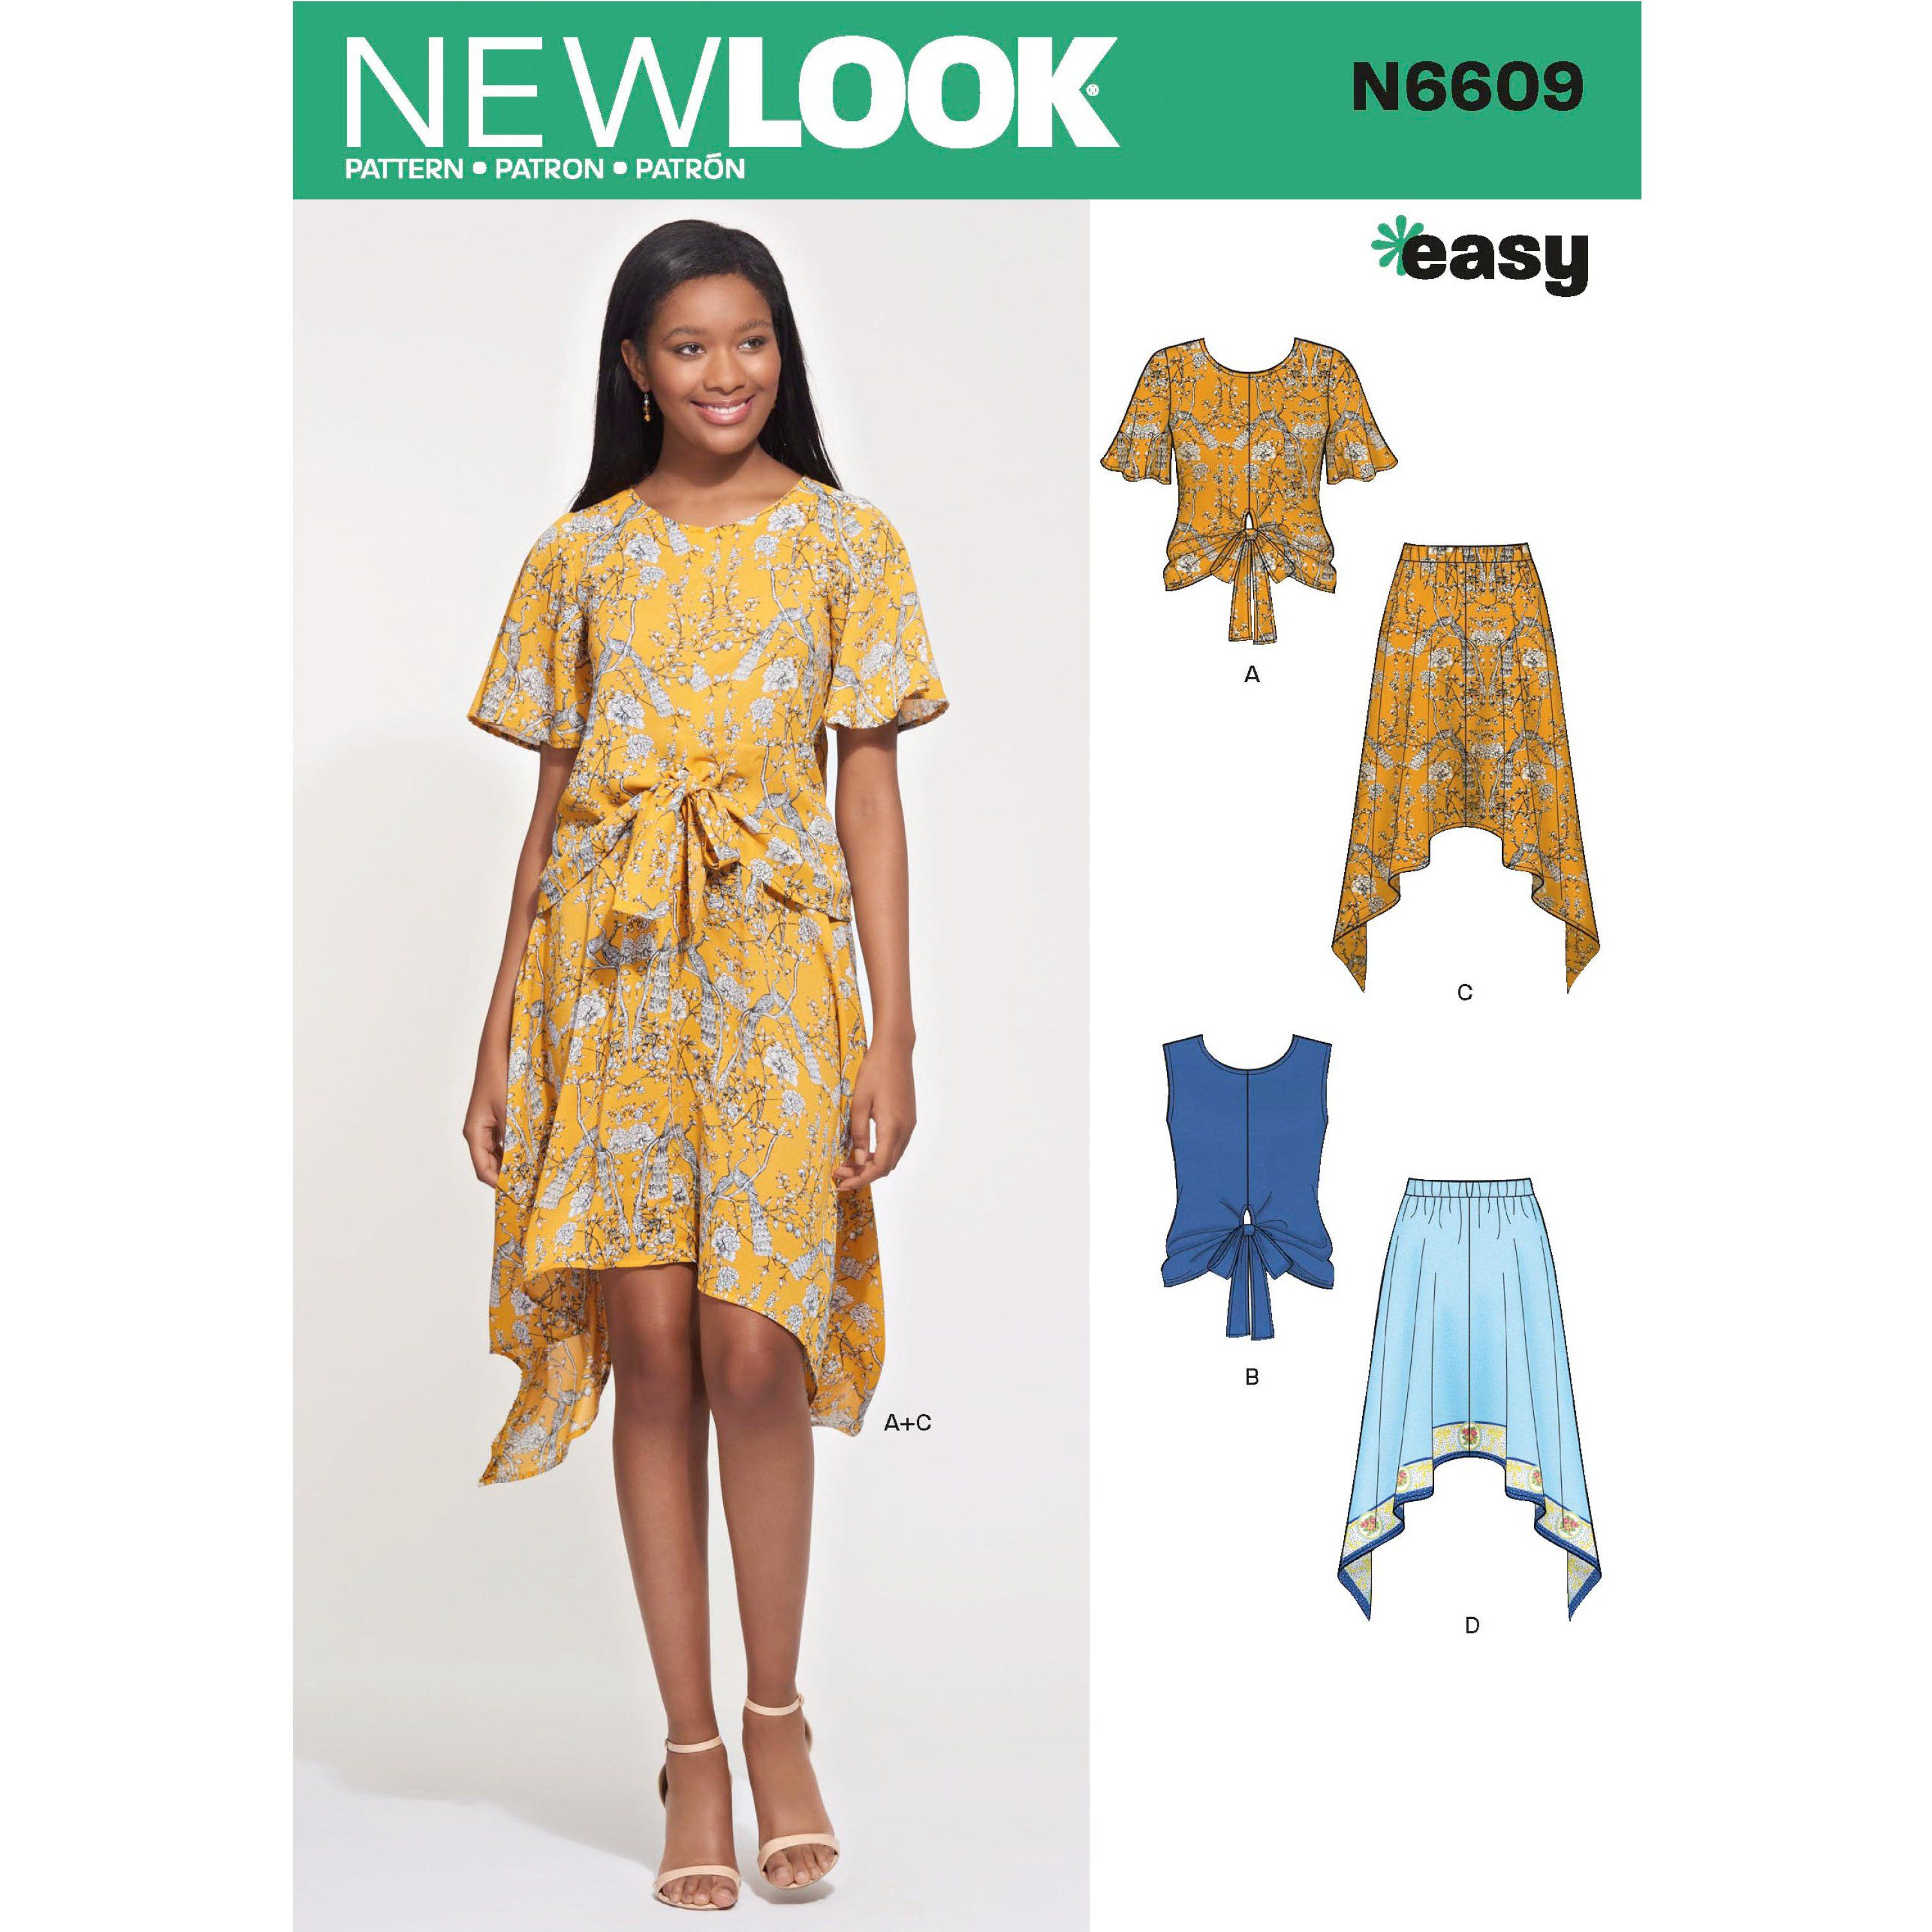 ae29923566a New Look Sewing Pattern N6609 Misses  2-Piece Dress